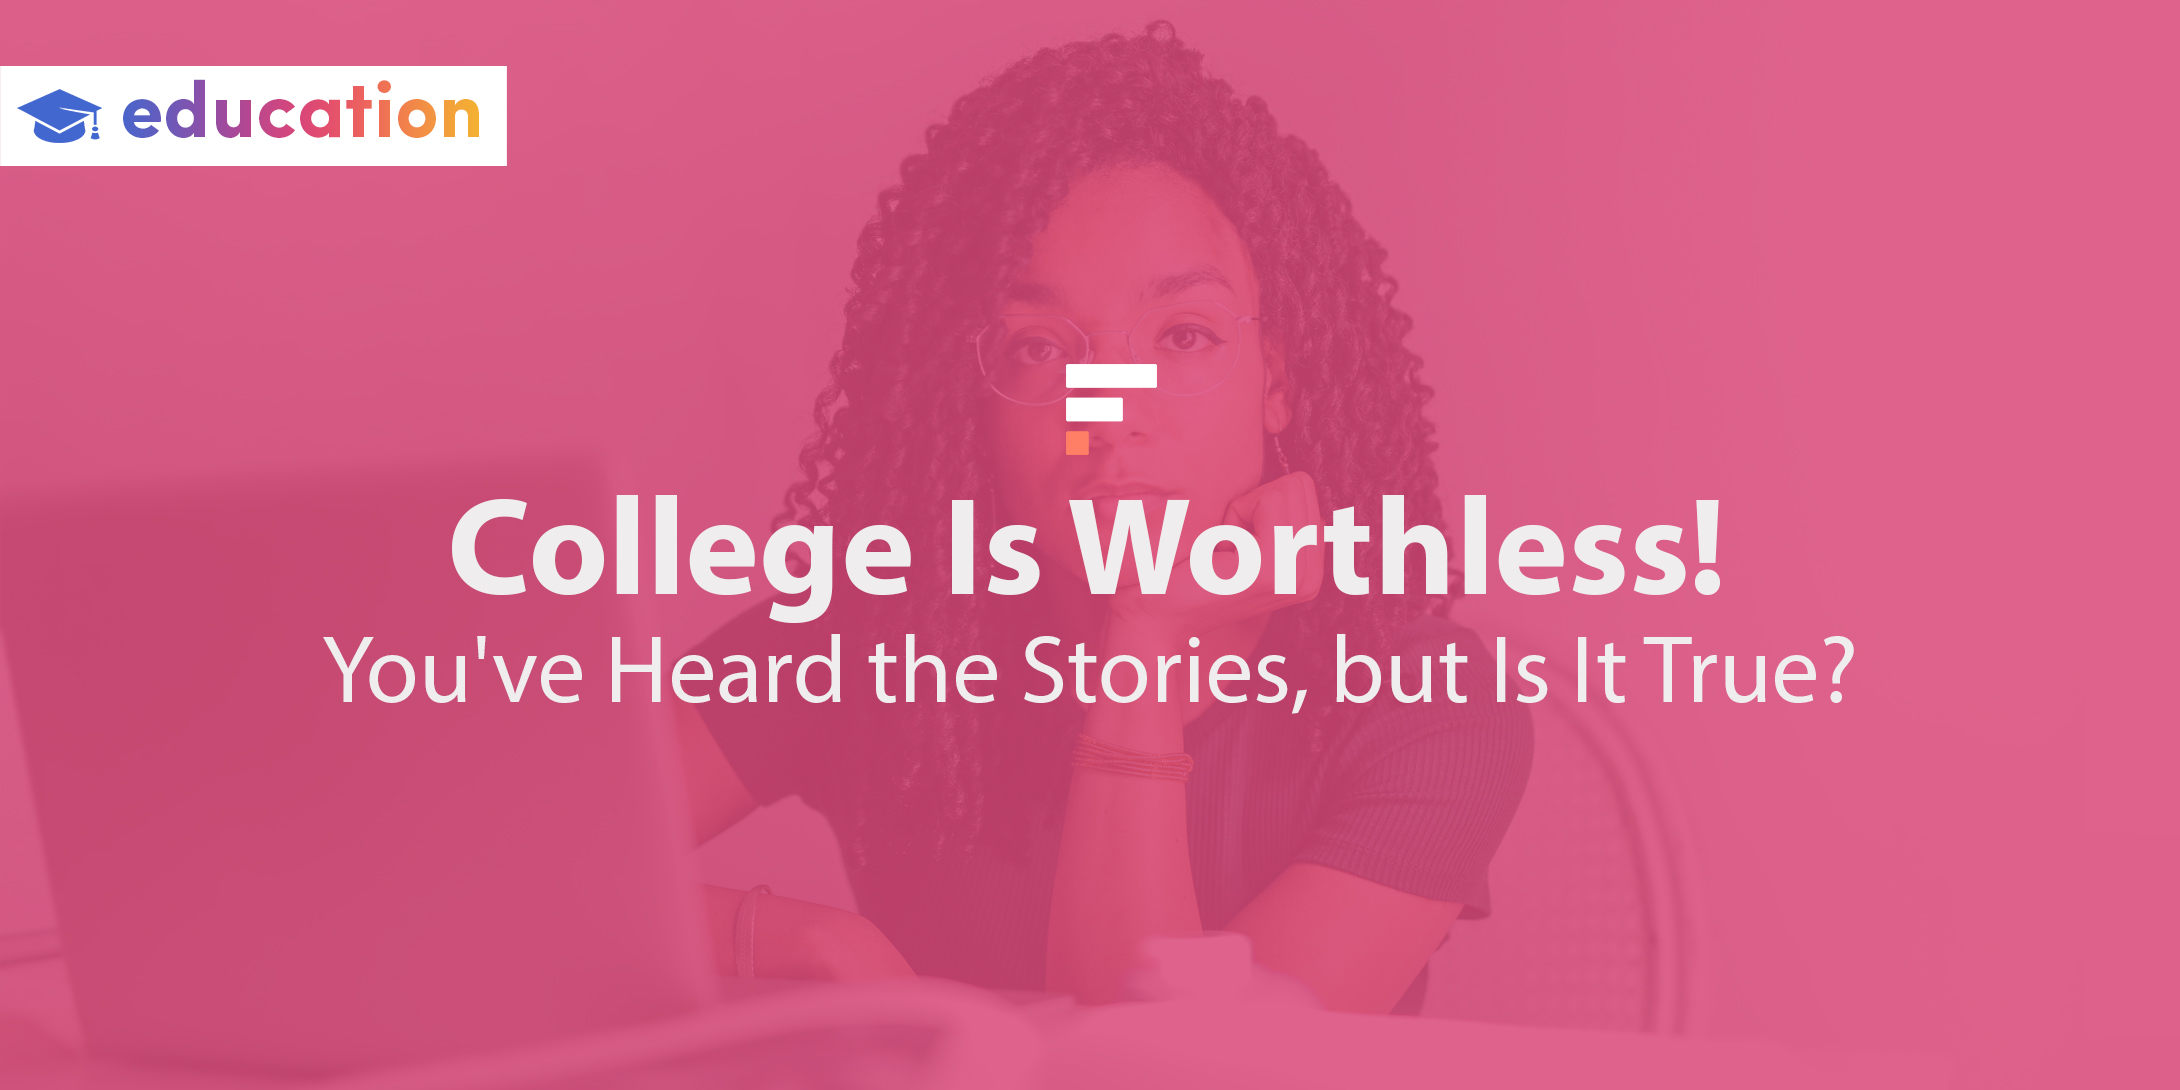 College Is Worthless! You've Heard the Stories, but Is It True?